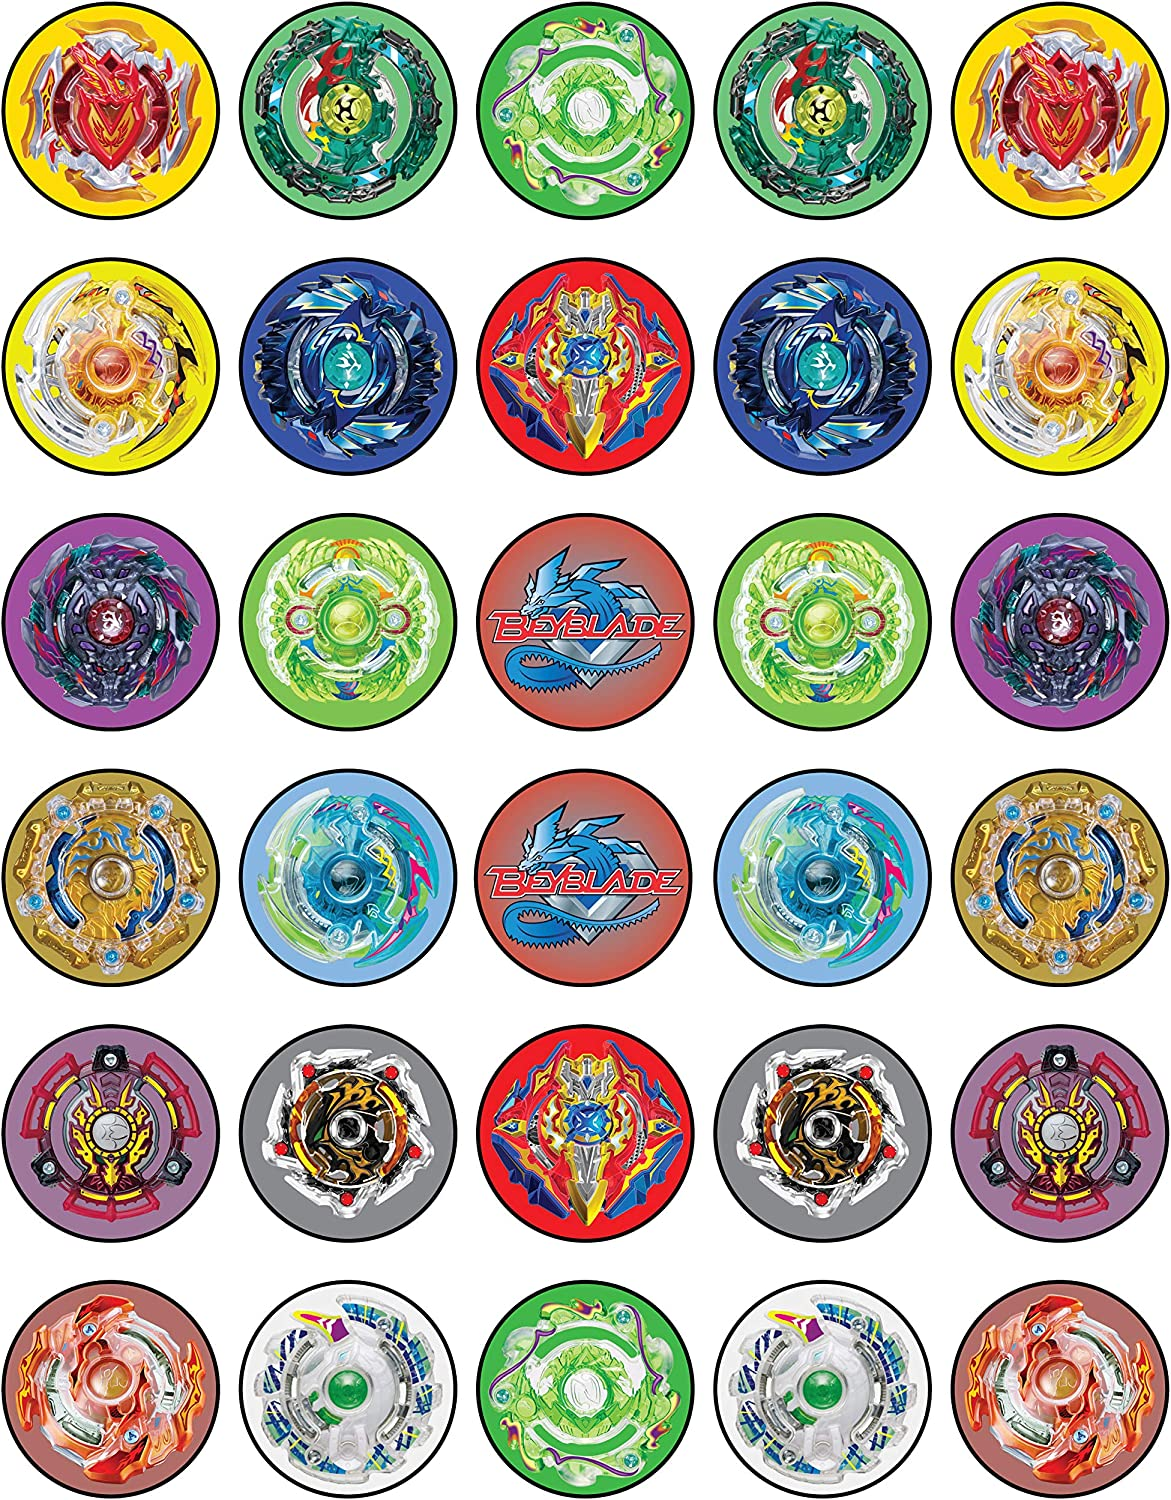 Amazon Com 30 X Edible Cupcake Toppers Themed Of Beyblade New Collection Of Edible Cake Decorations Uncut Edible On Wafer Sheet Grocery Gourmet Food